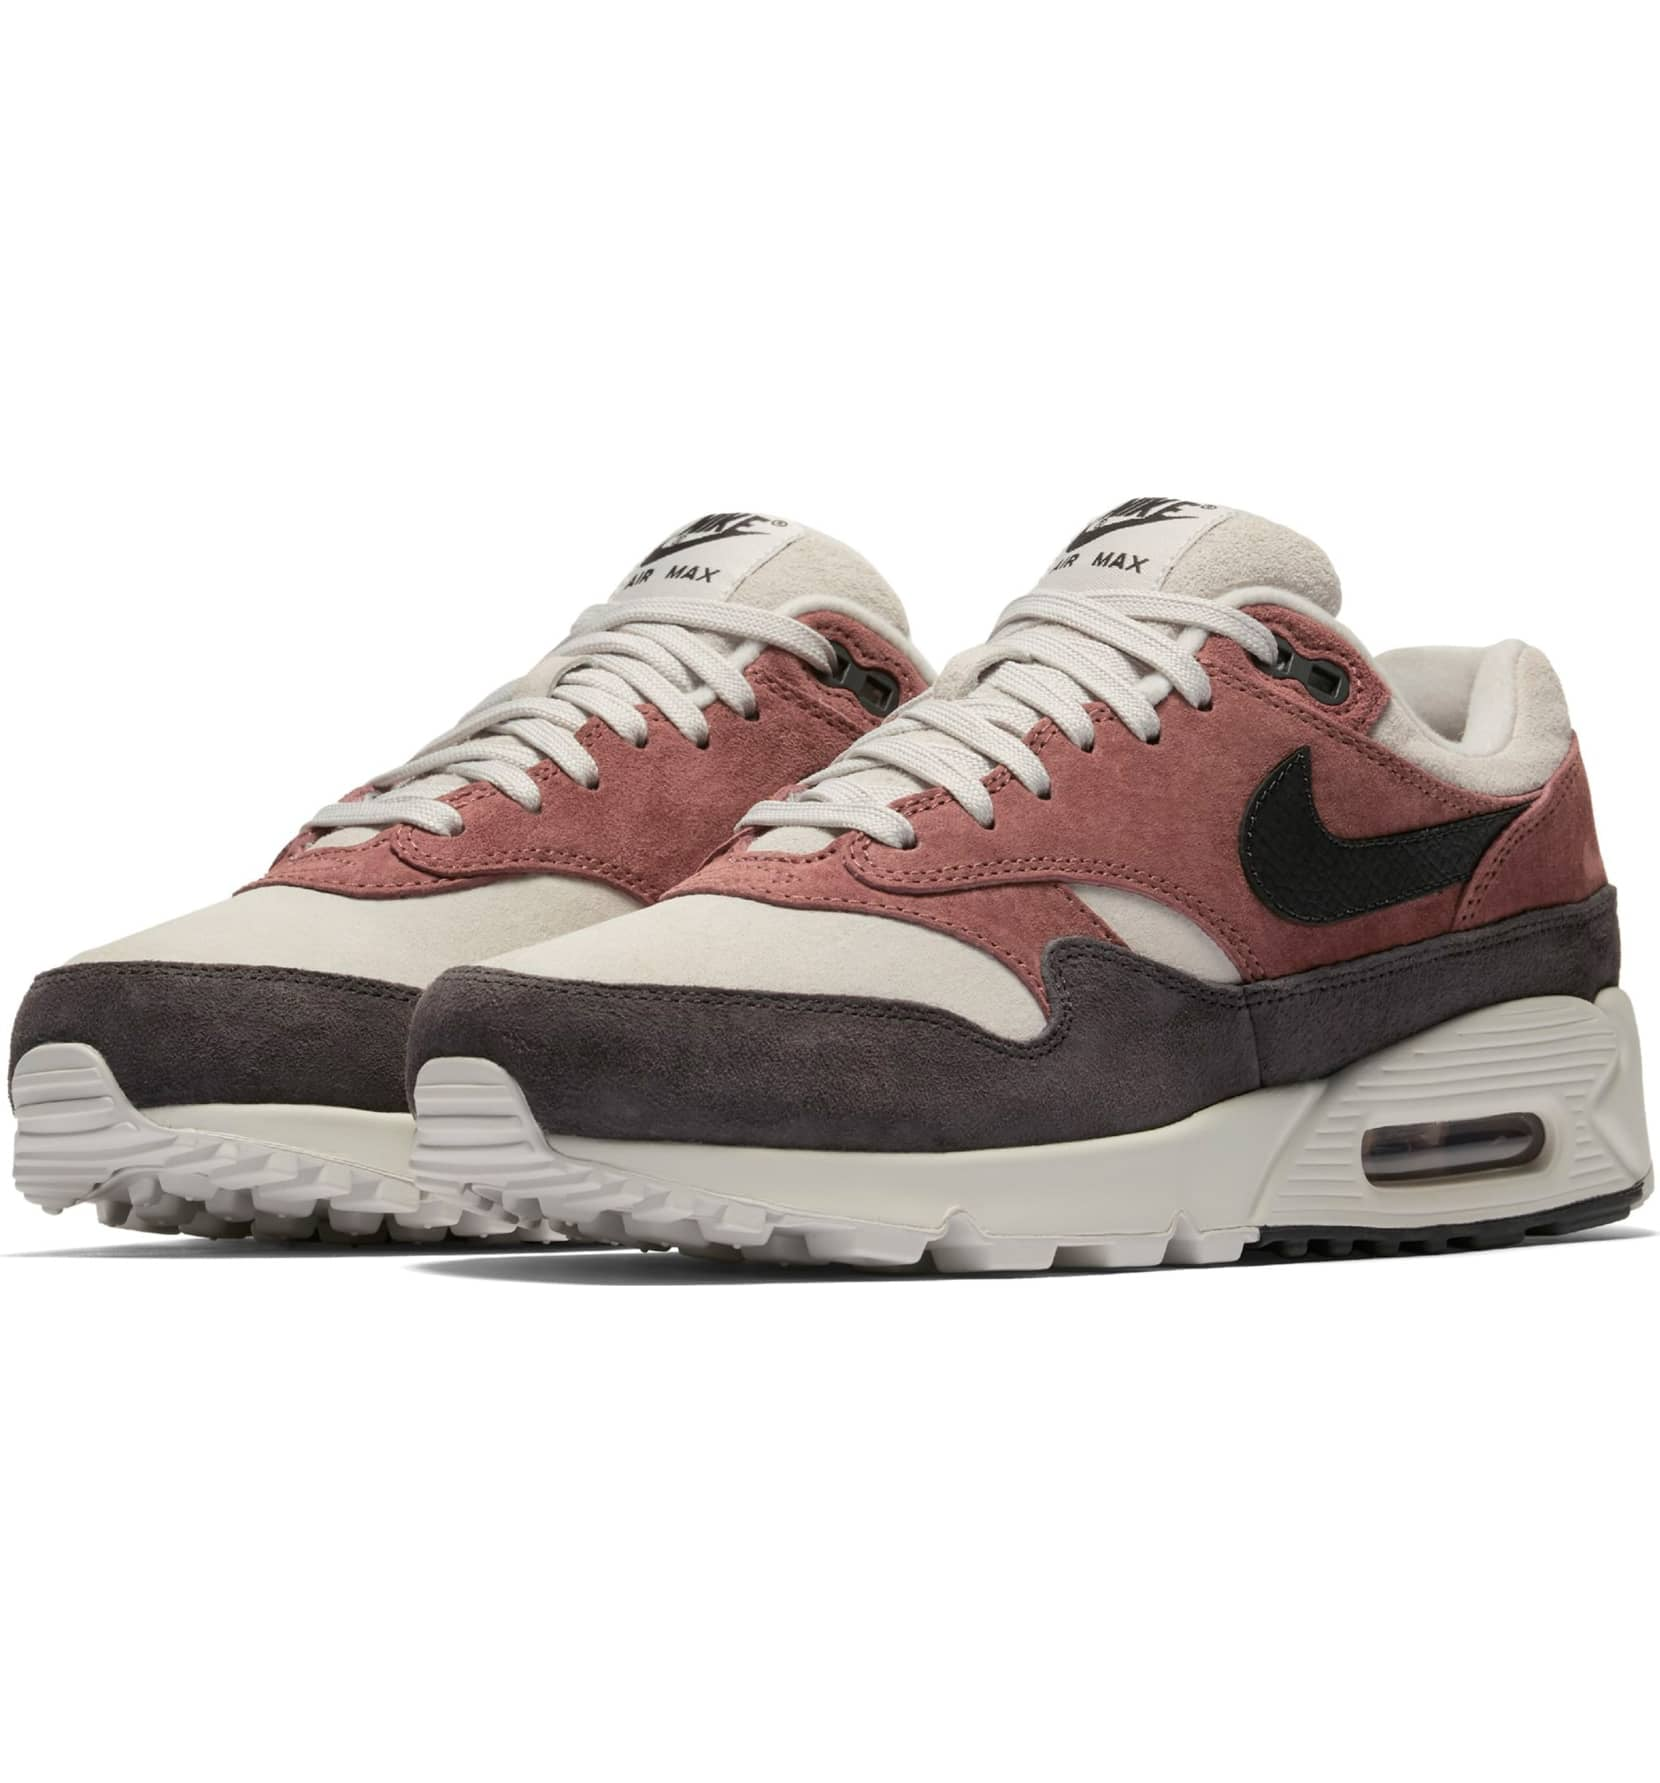 Nike Air Max 901: Latest Hybrid Sneaker Now Available